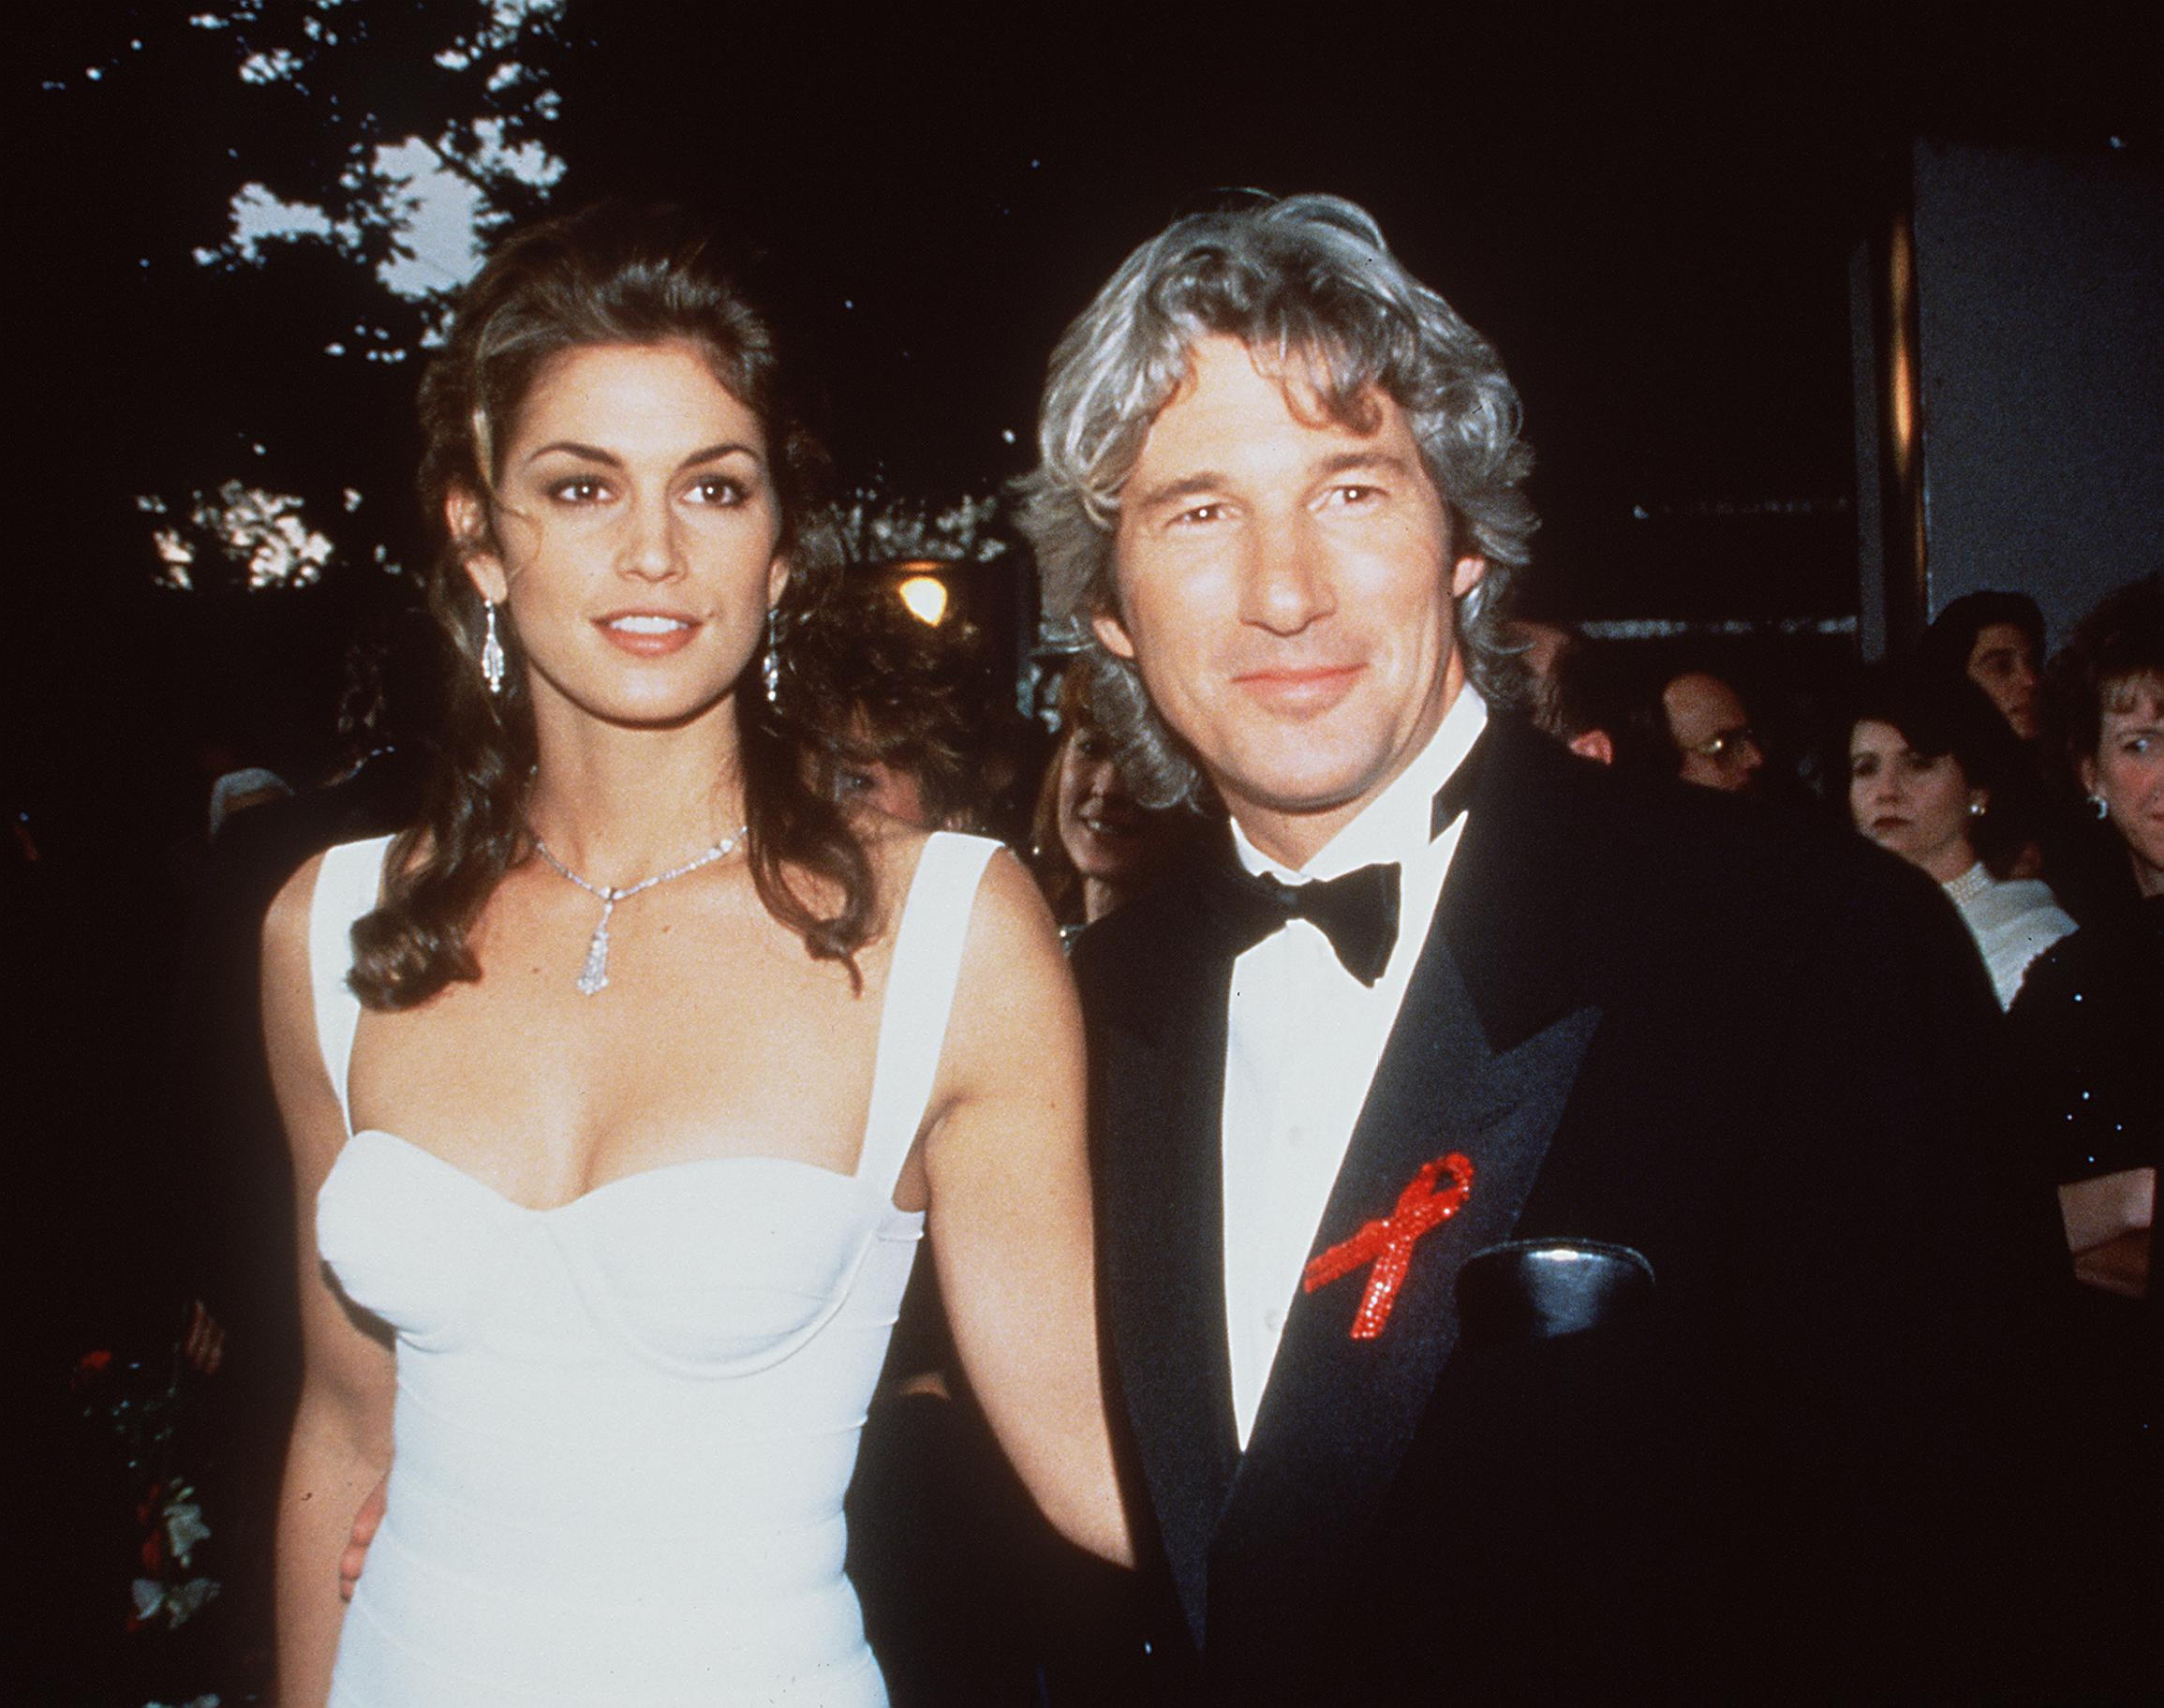 Richard Gere and Cindy Crawford in 1993. | Source: Getty Images.